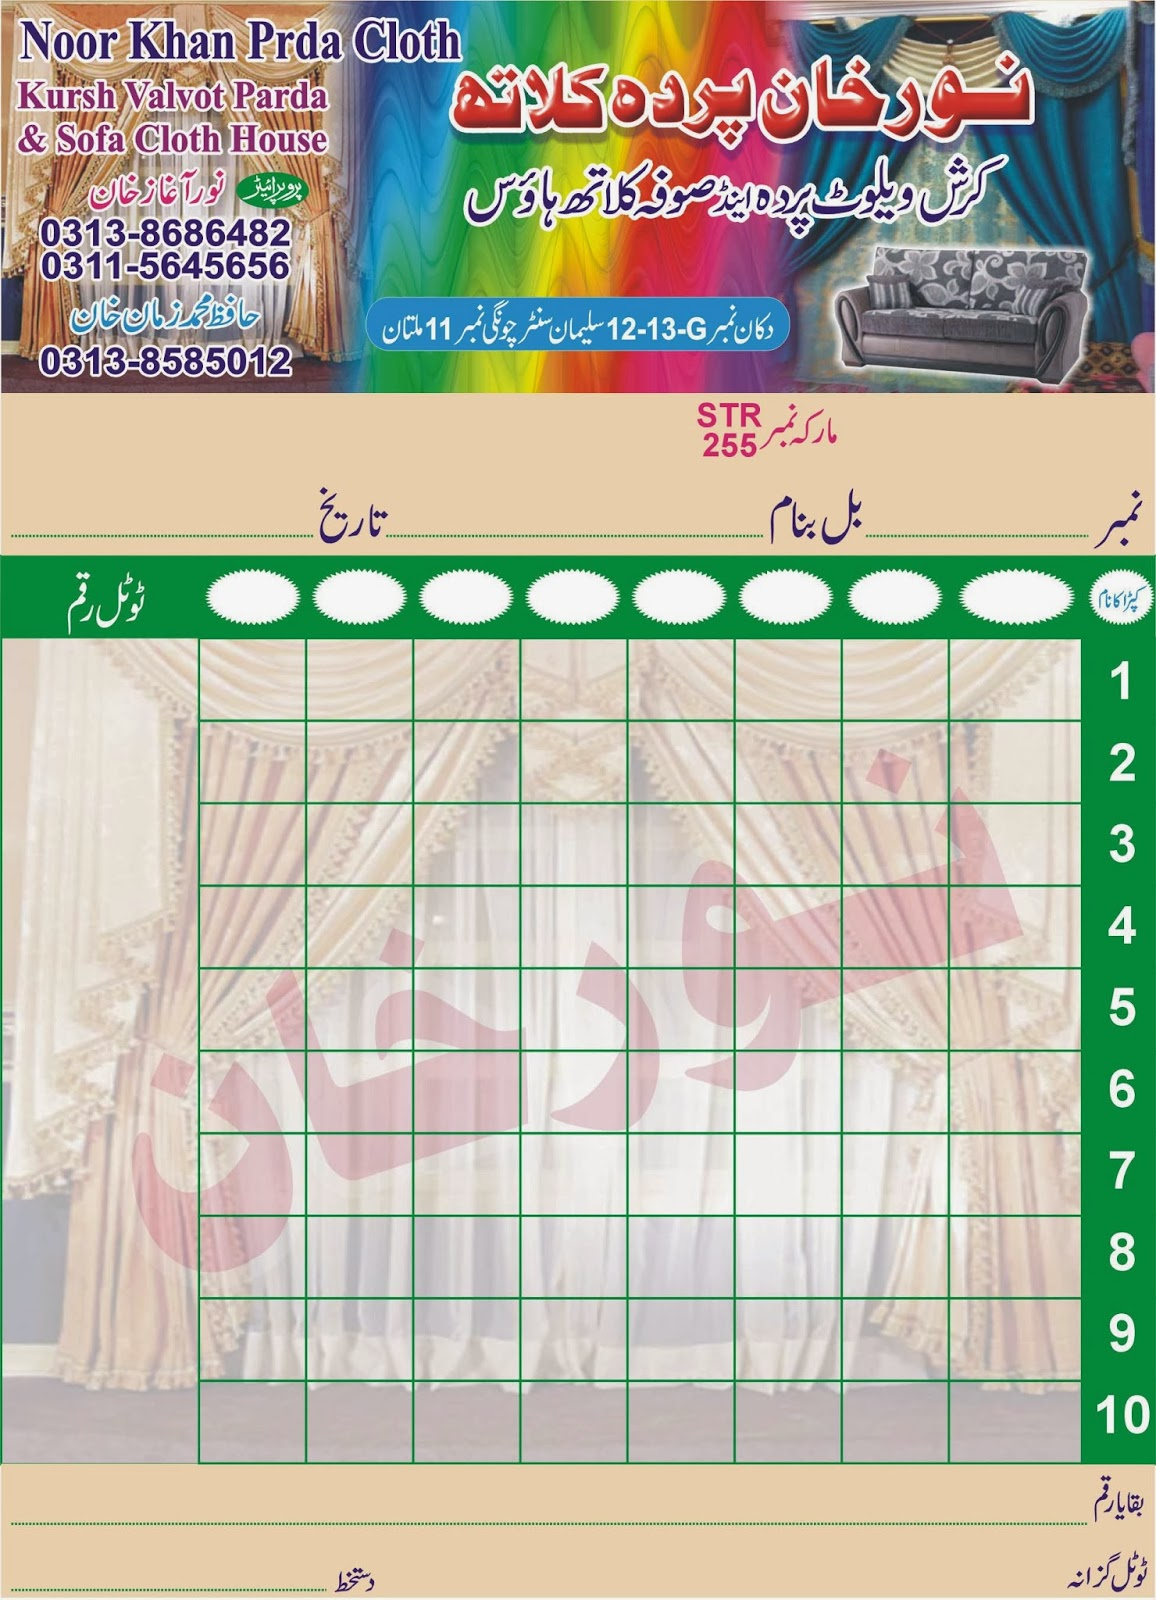 all about printing items design informaion cash memo layout cash memo layout noor parda cloth house crush welwet sofa cloth house